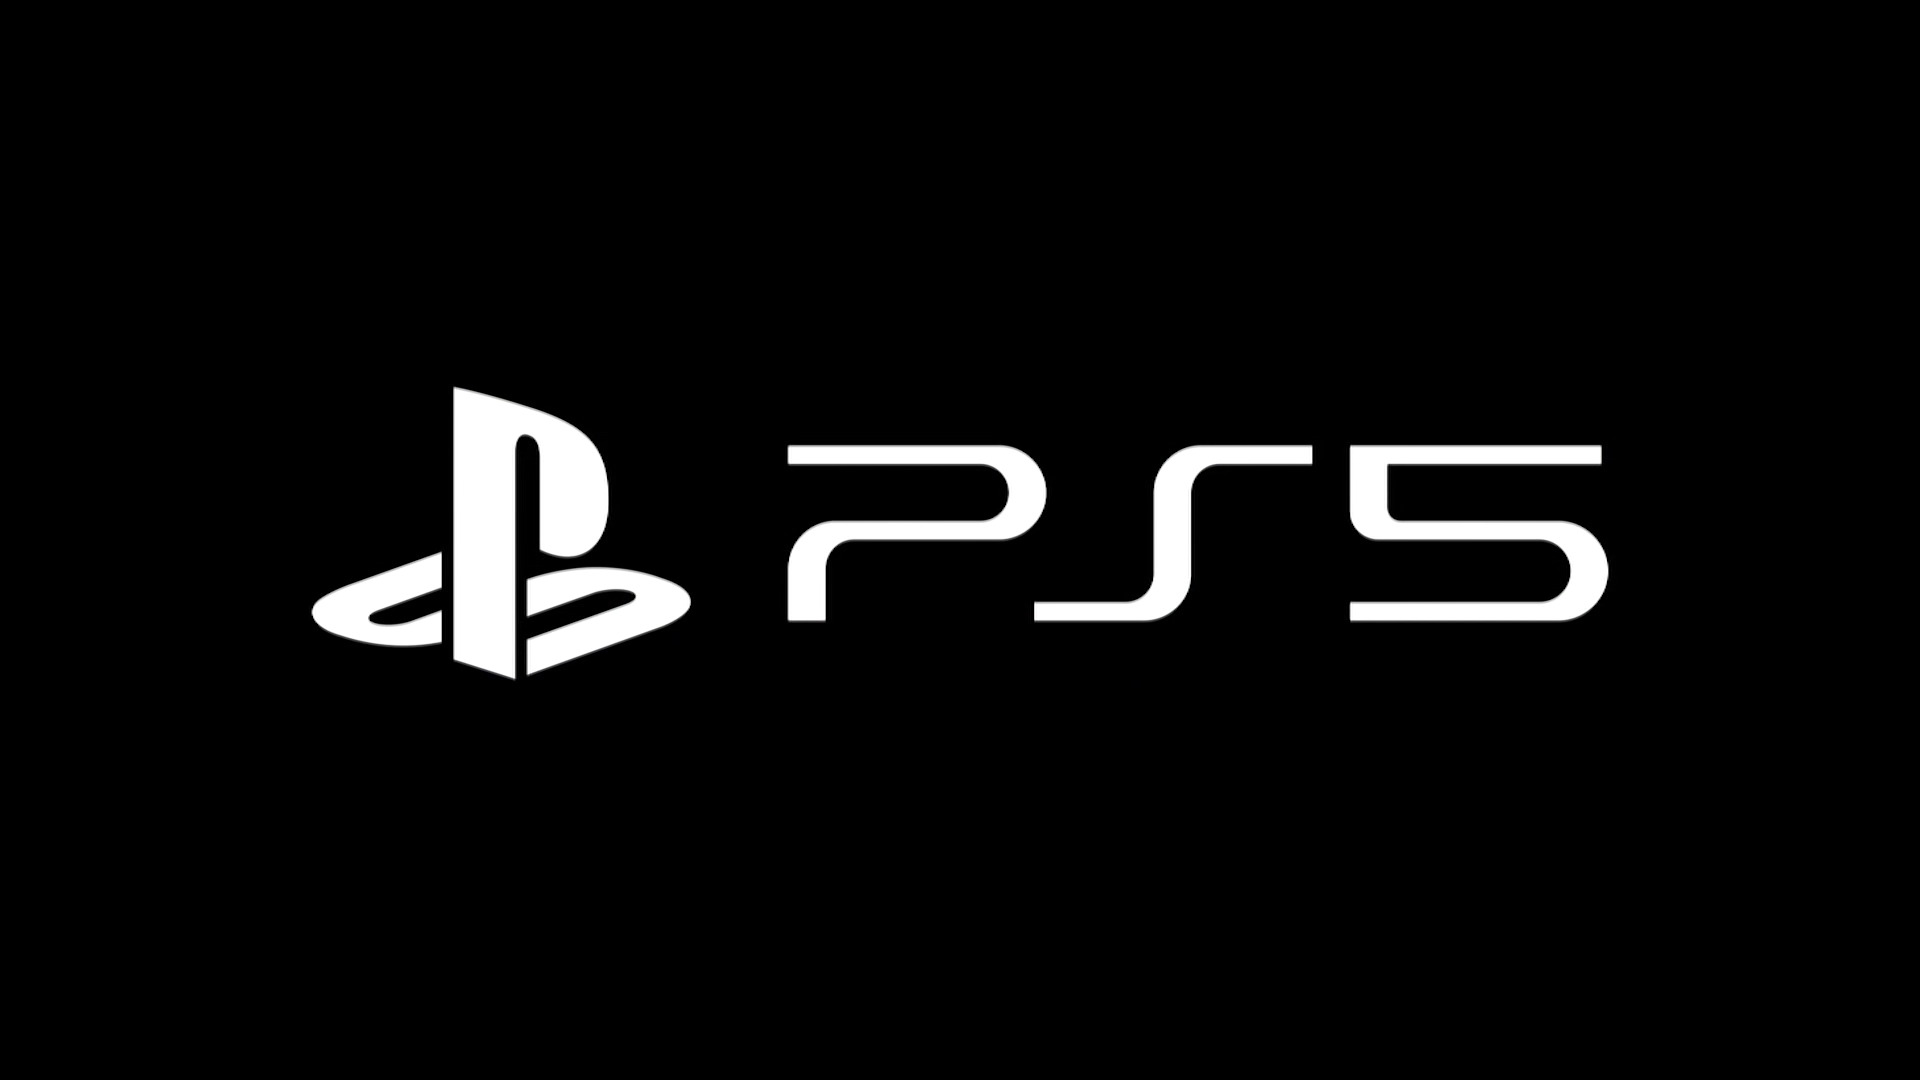 PS5 logo revealed by Sony